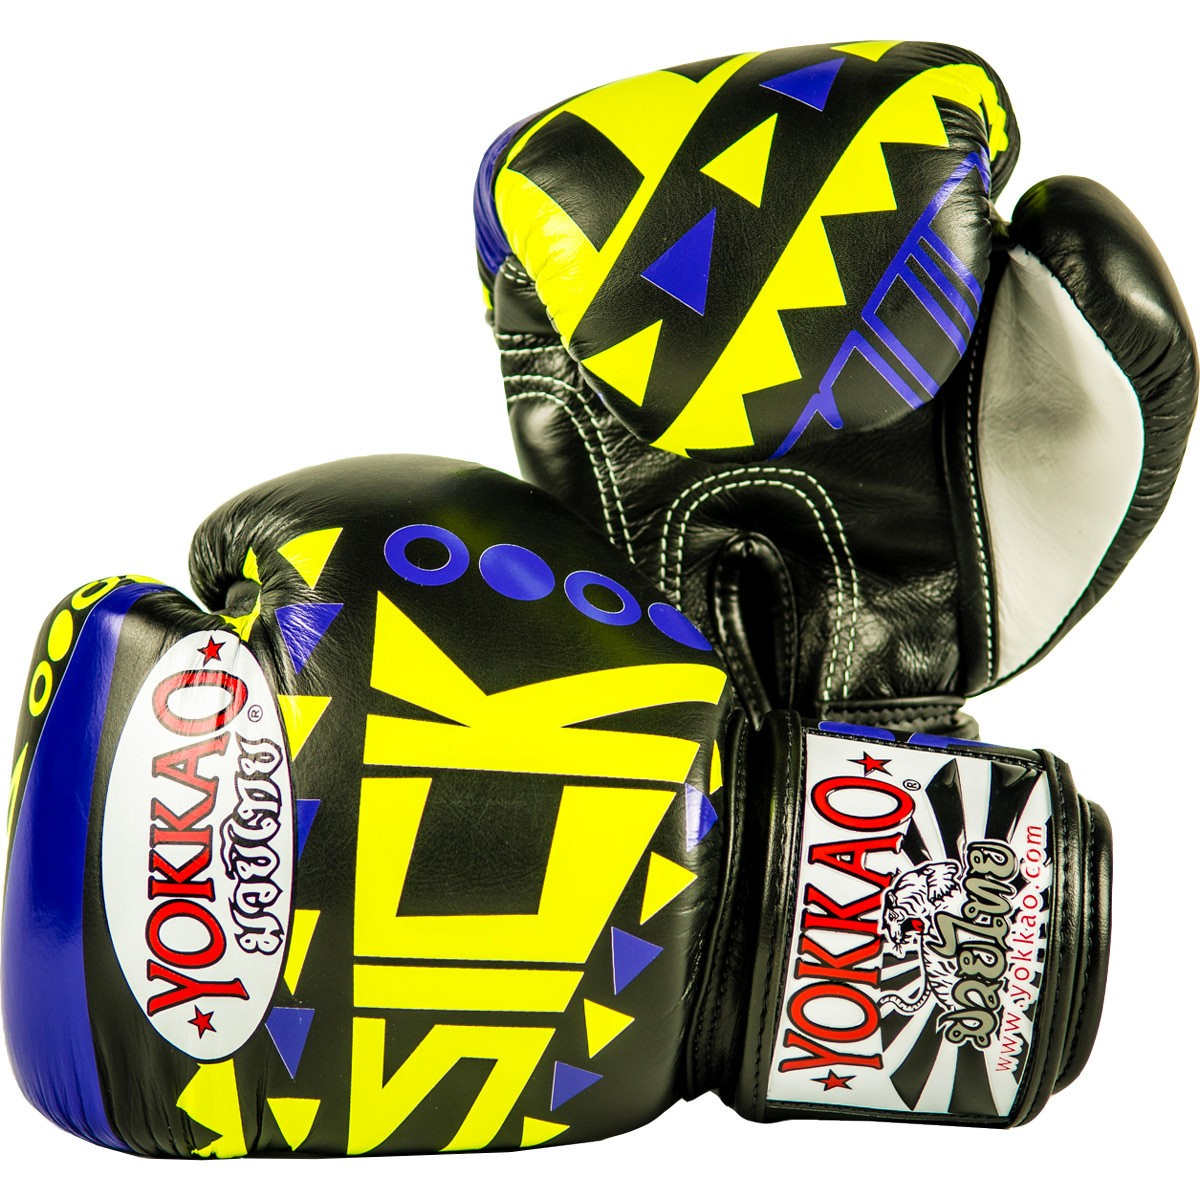 sick-muay-thai-boxing-gloves-violet-yellow-76b